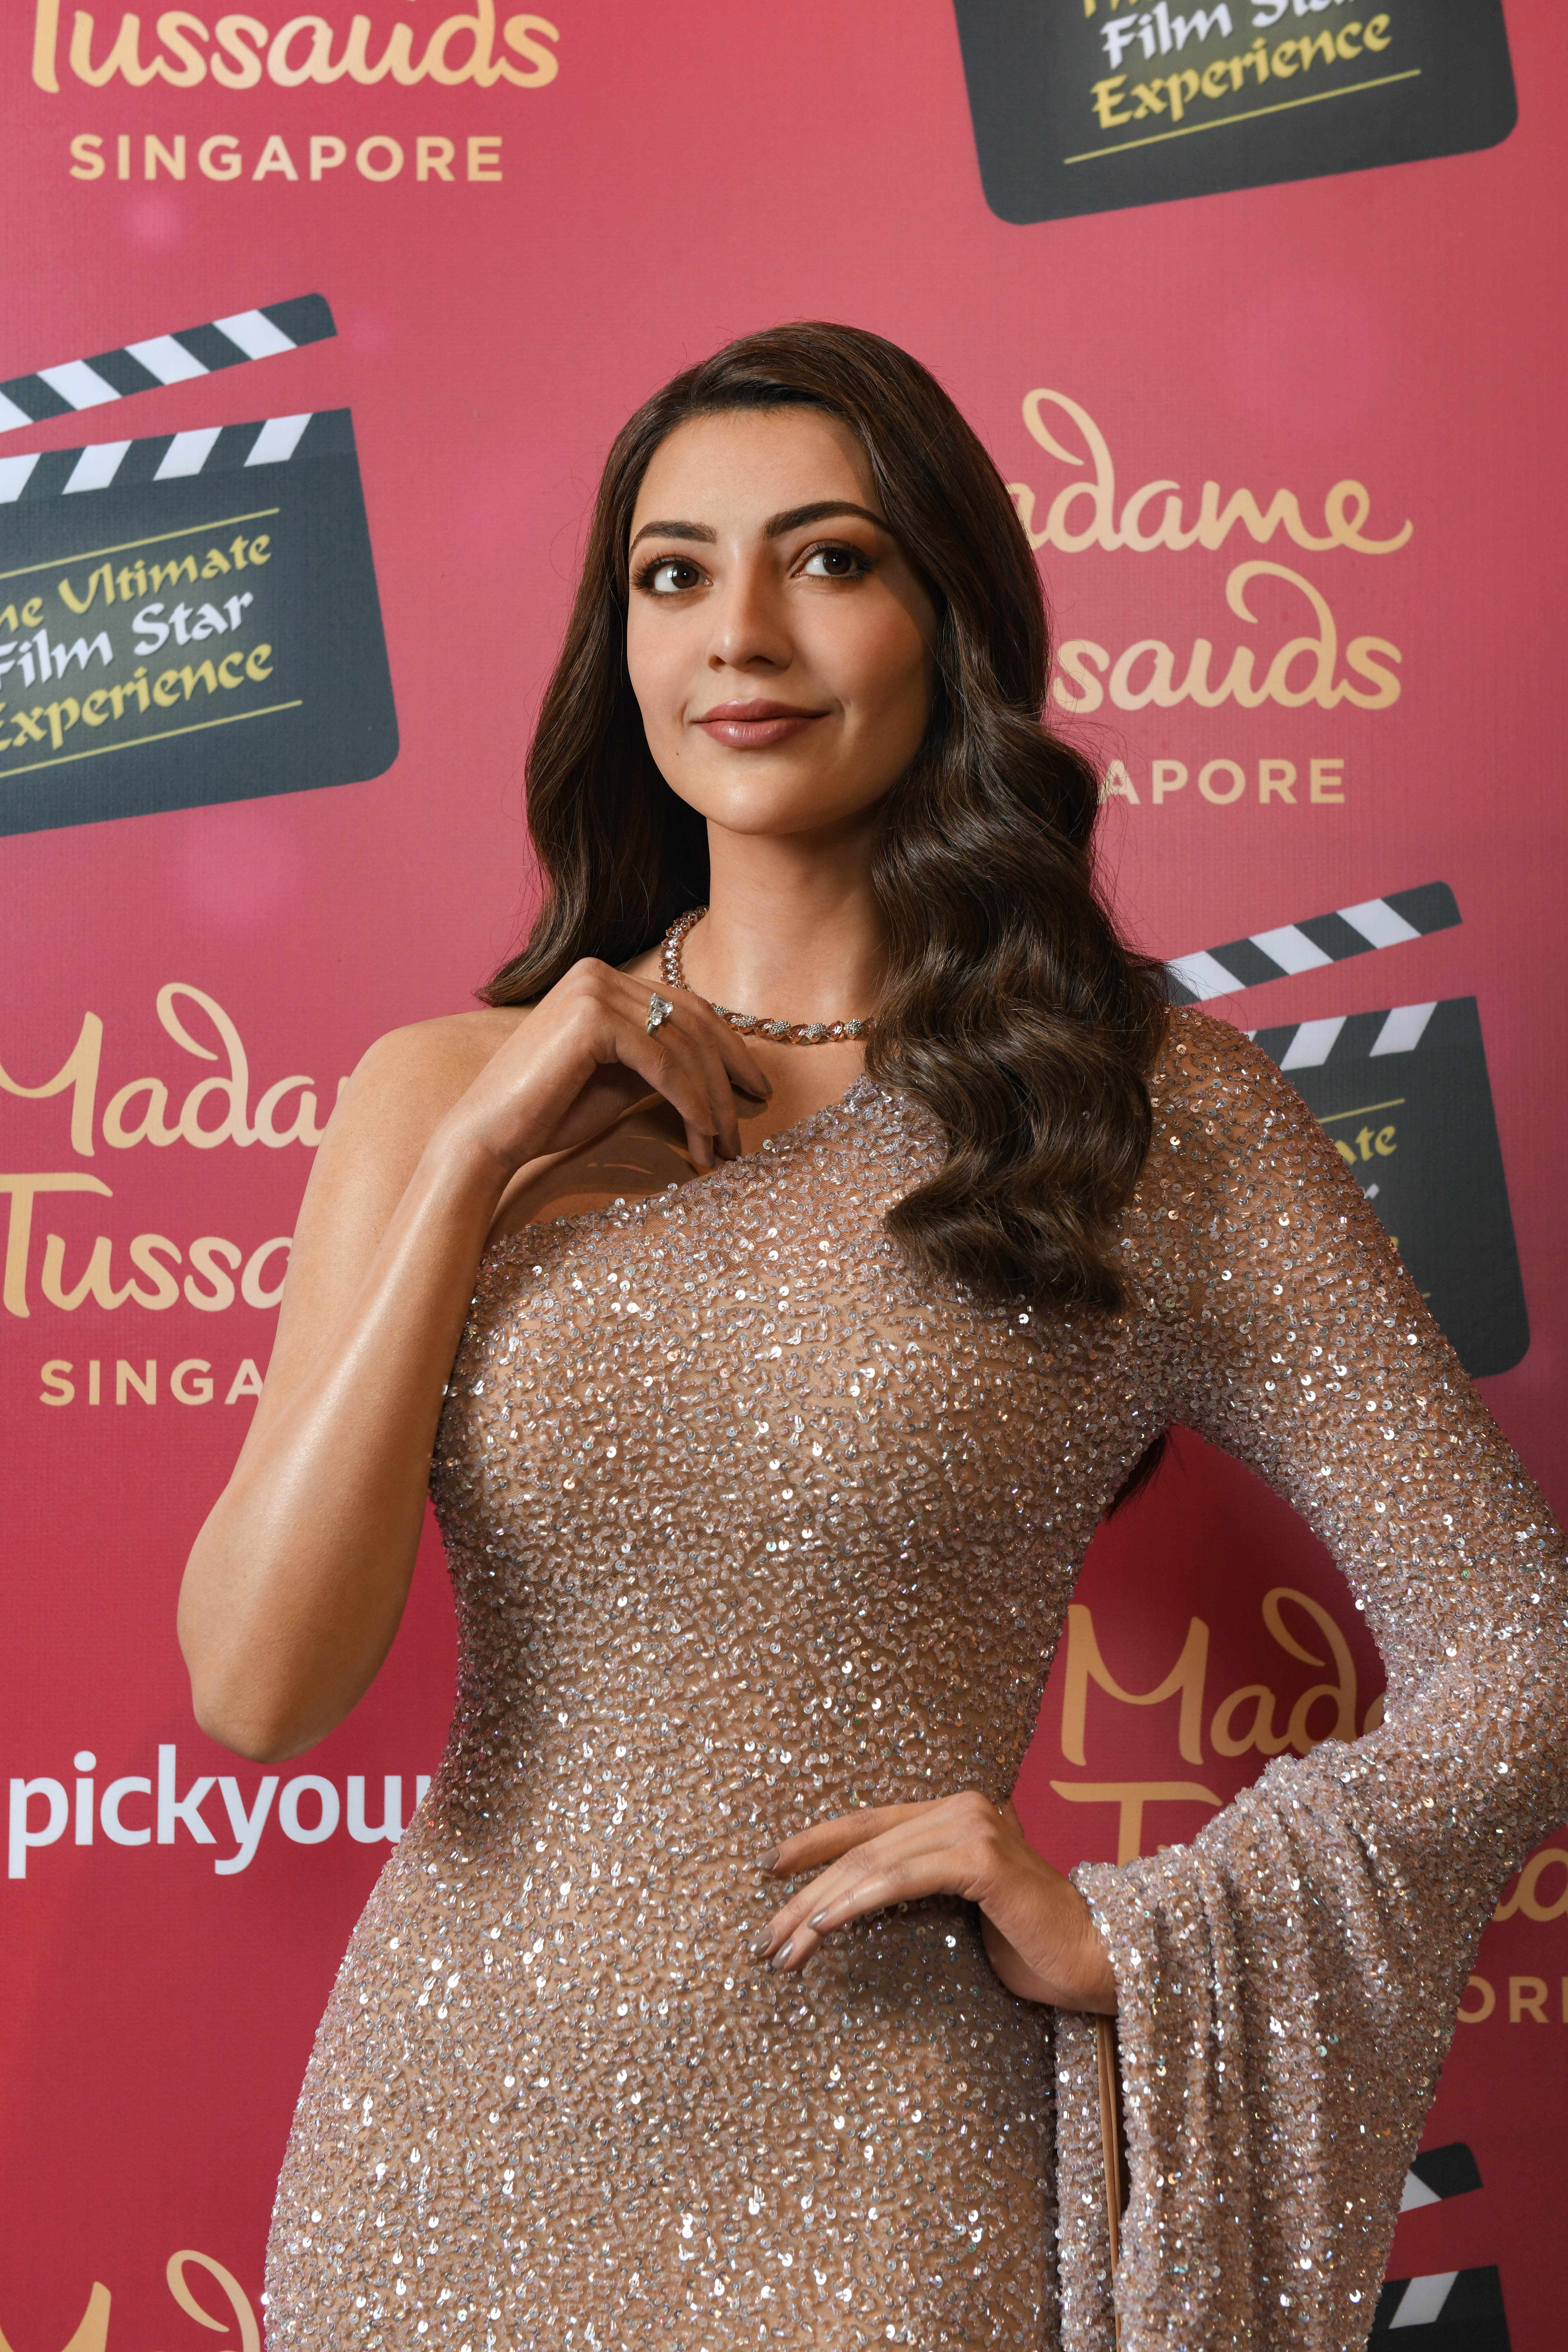 Kajal Aggarwal's specially designed costume for her newly unveiled wax figure at Madame Tussauds Singapore is laden with Swarowski crystals and weighs a close to 8 kilograms. Photo Courtesy: Madame Toussauds, Singapore